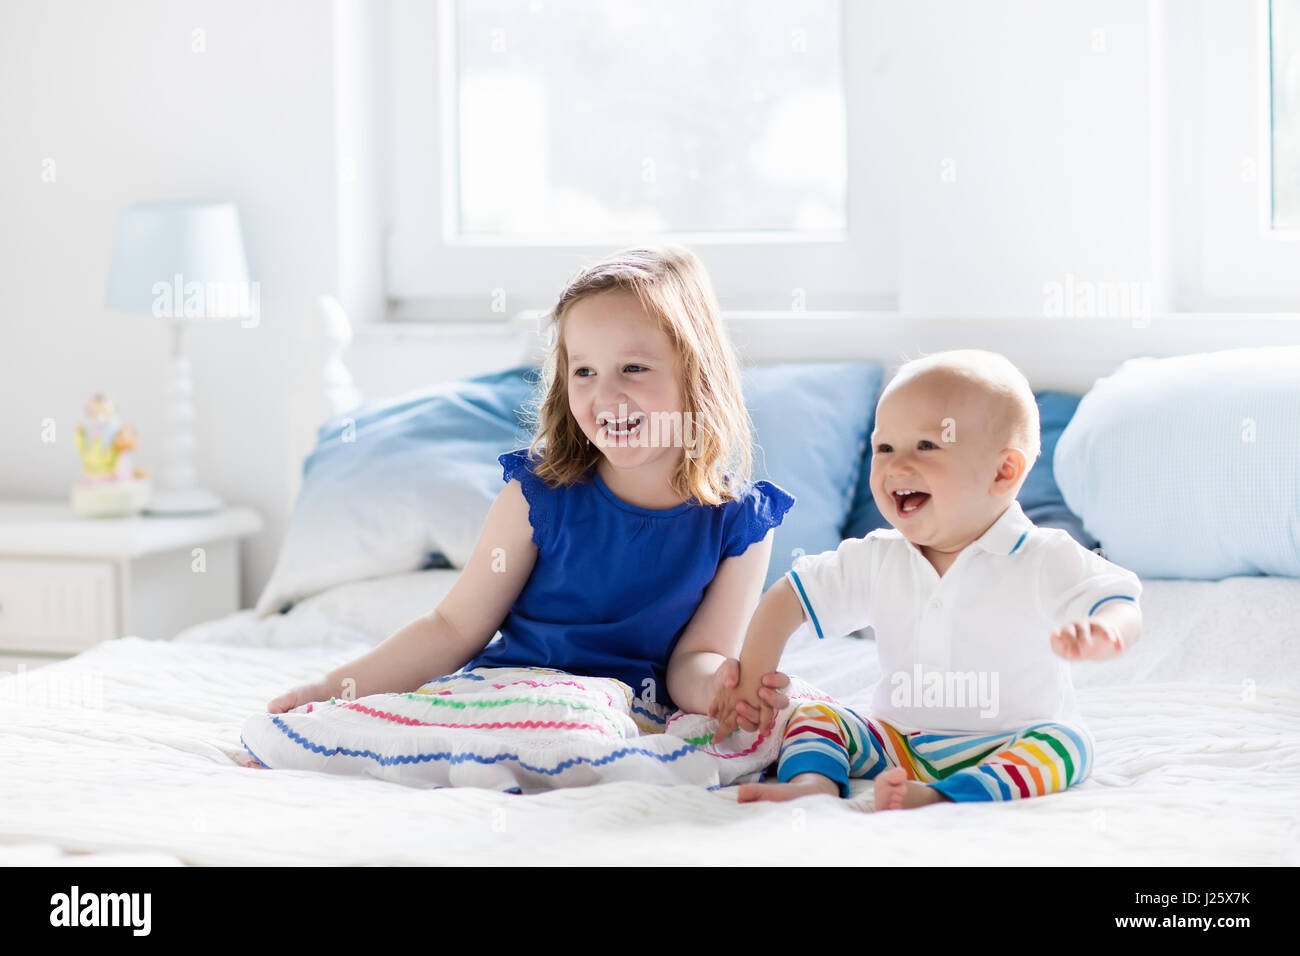 Parents baby crib stock photos parents baby crib stock for Boys and girls in bed